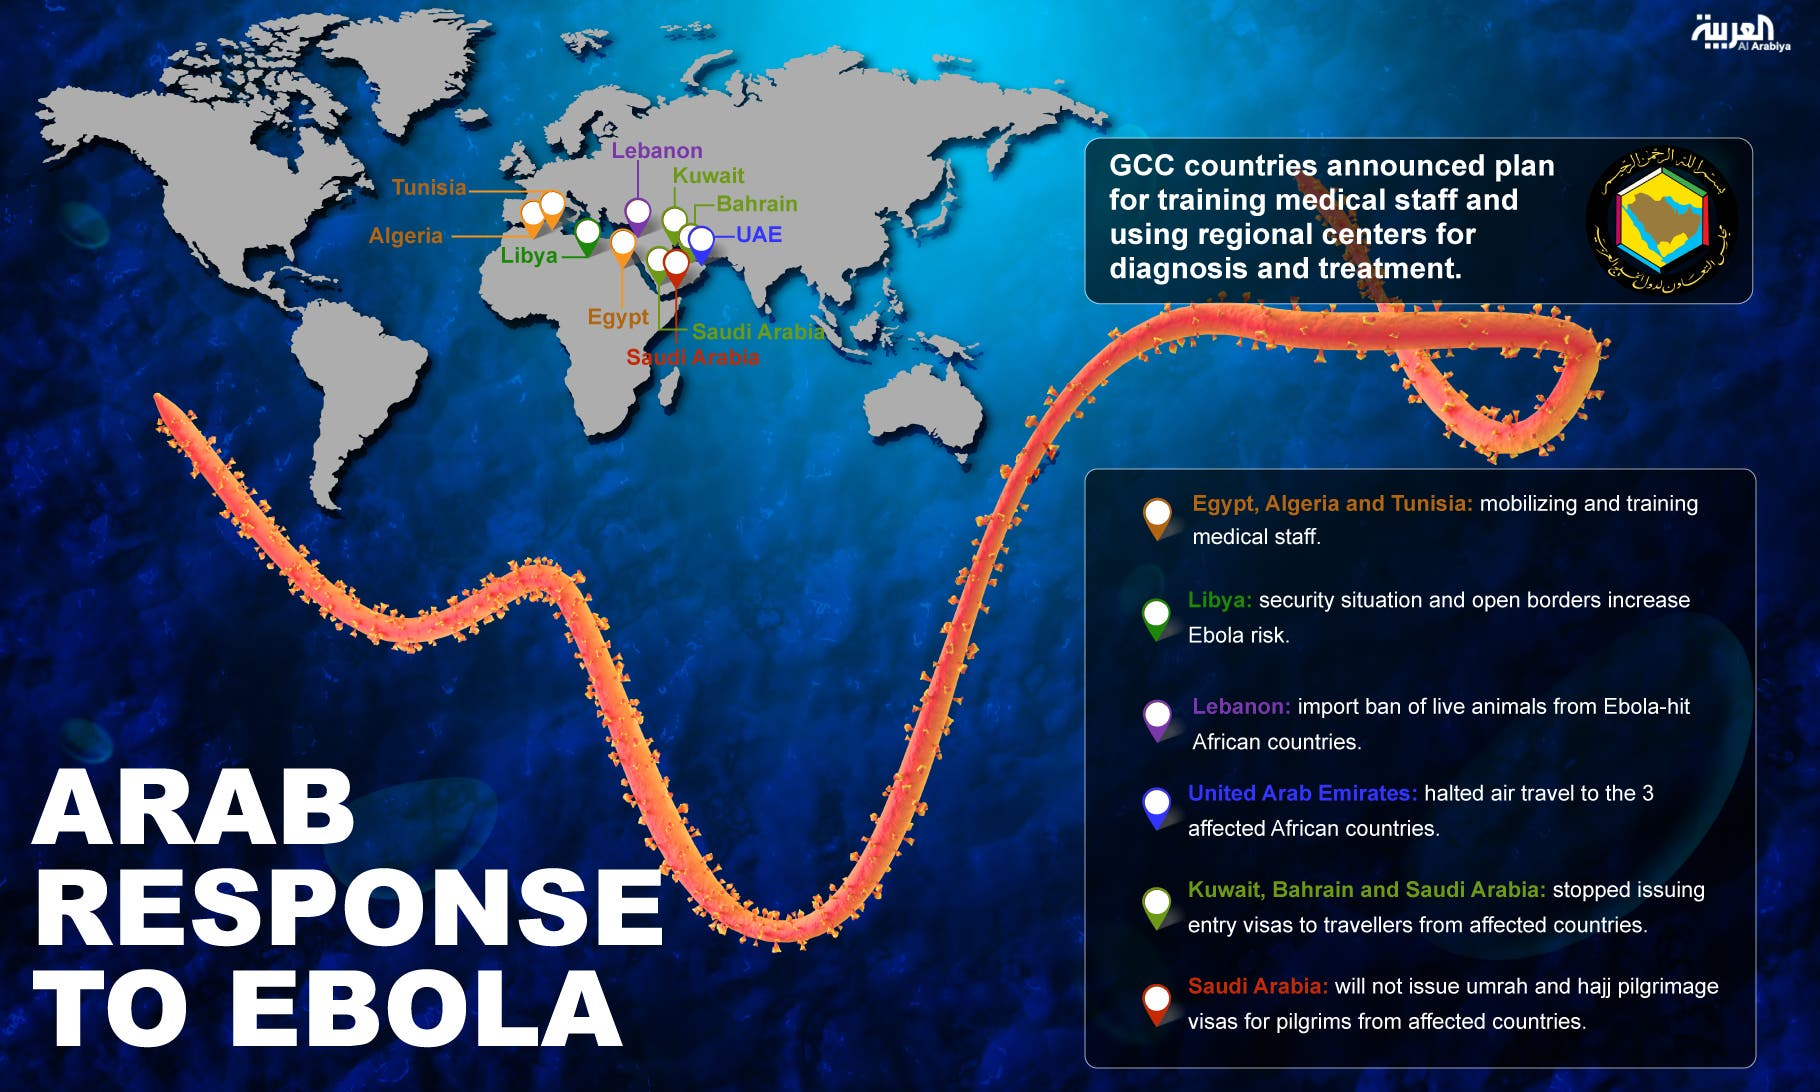 What are Mideast governments doing to combat Ebola? - Al Arabiya English